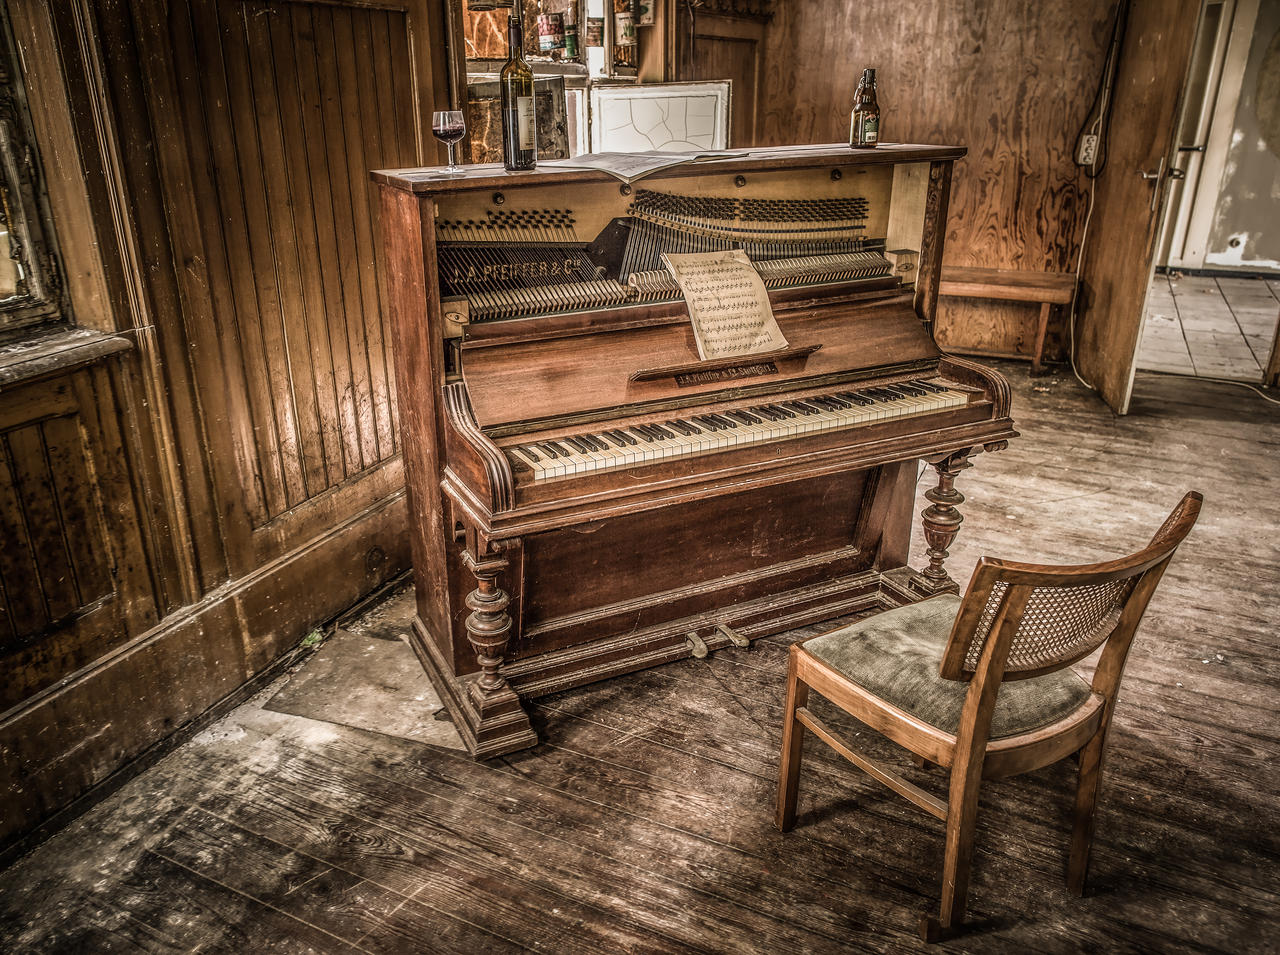 The Old Piano by wulfman65